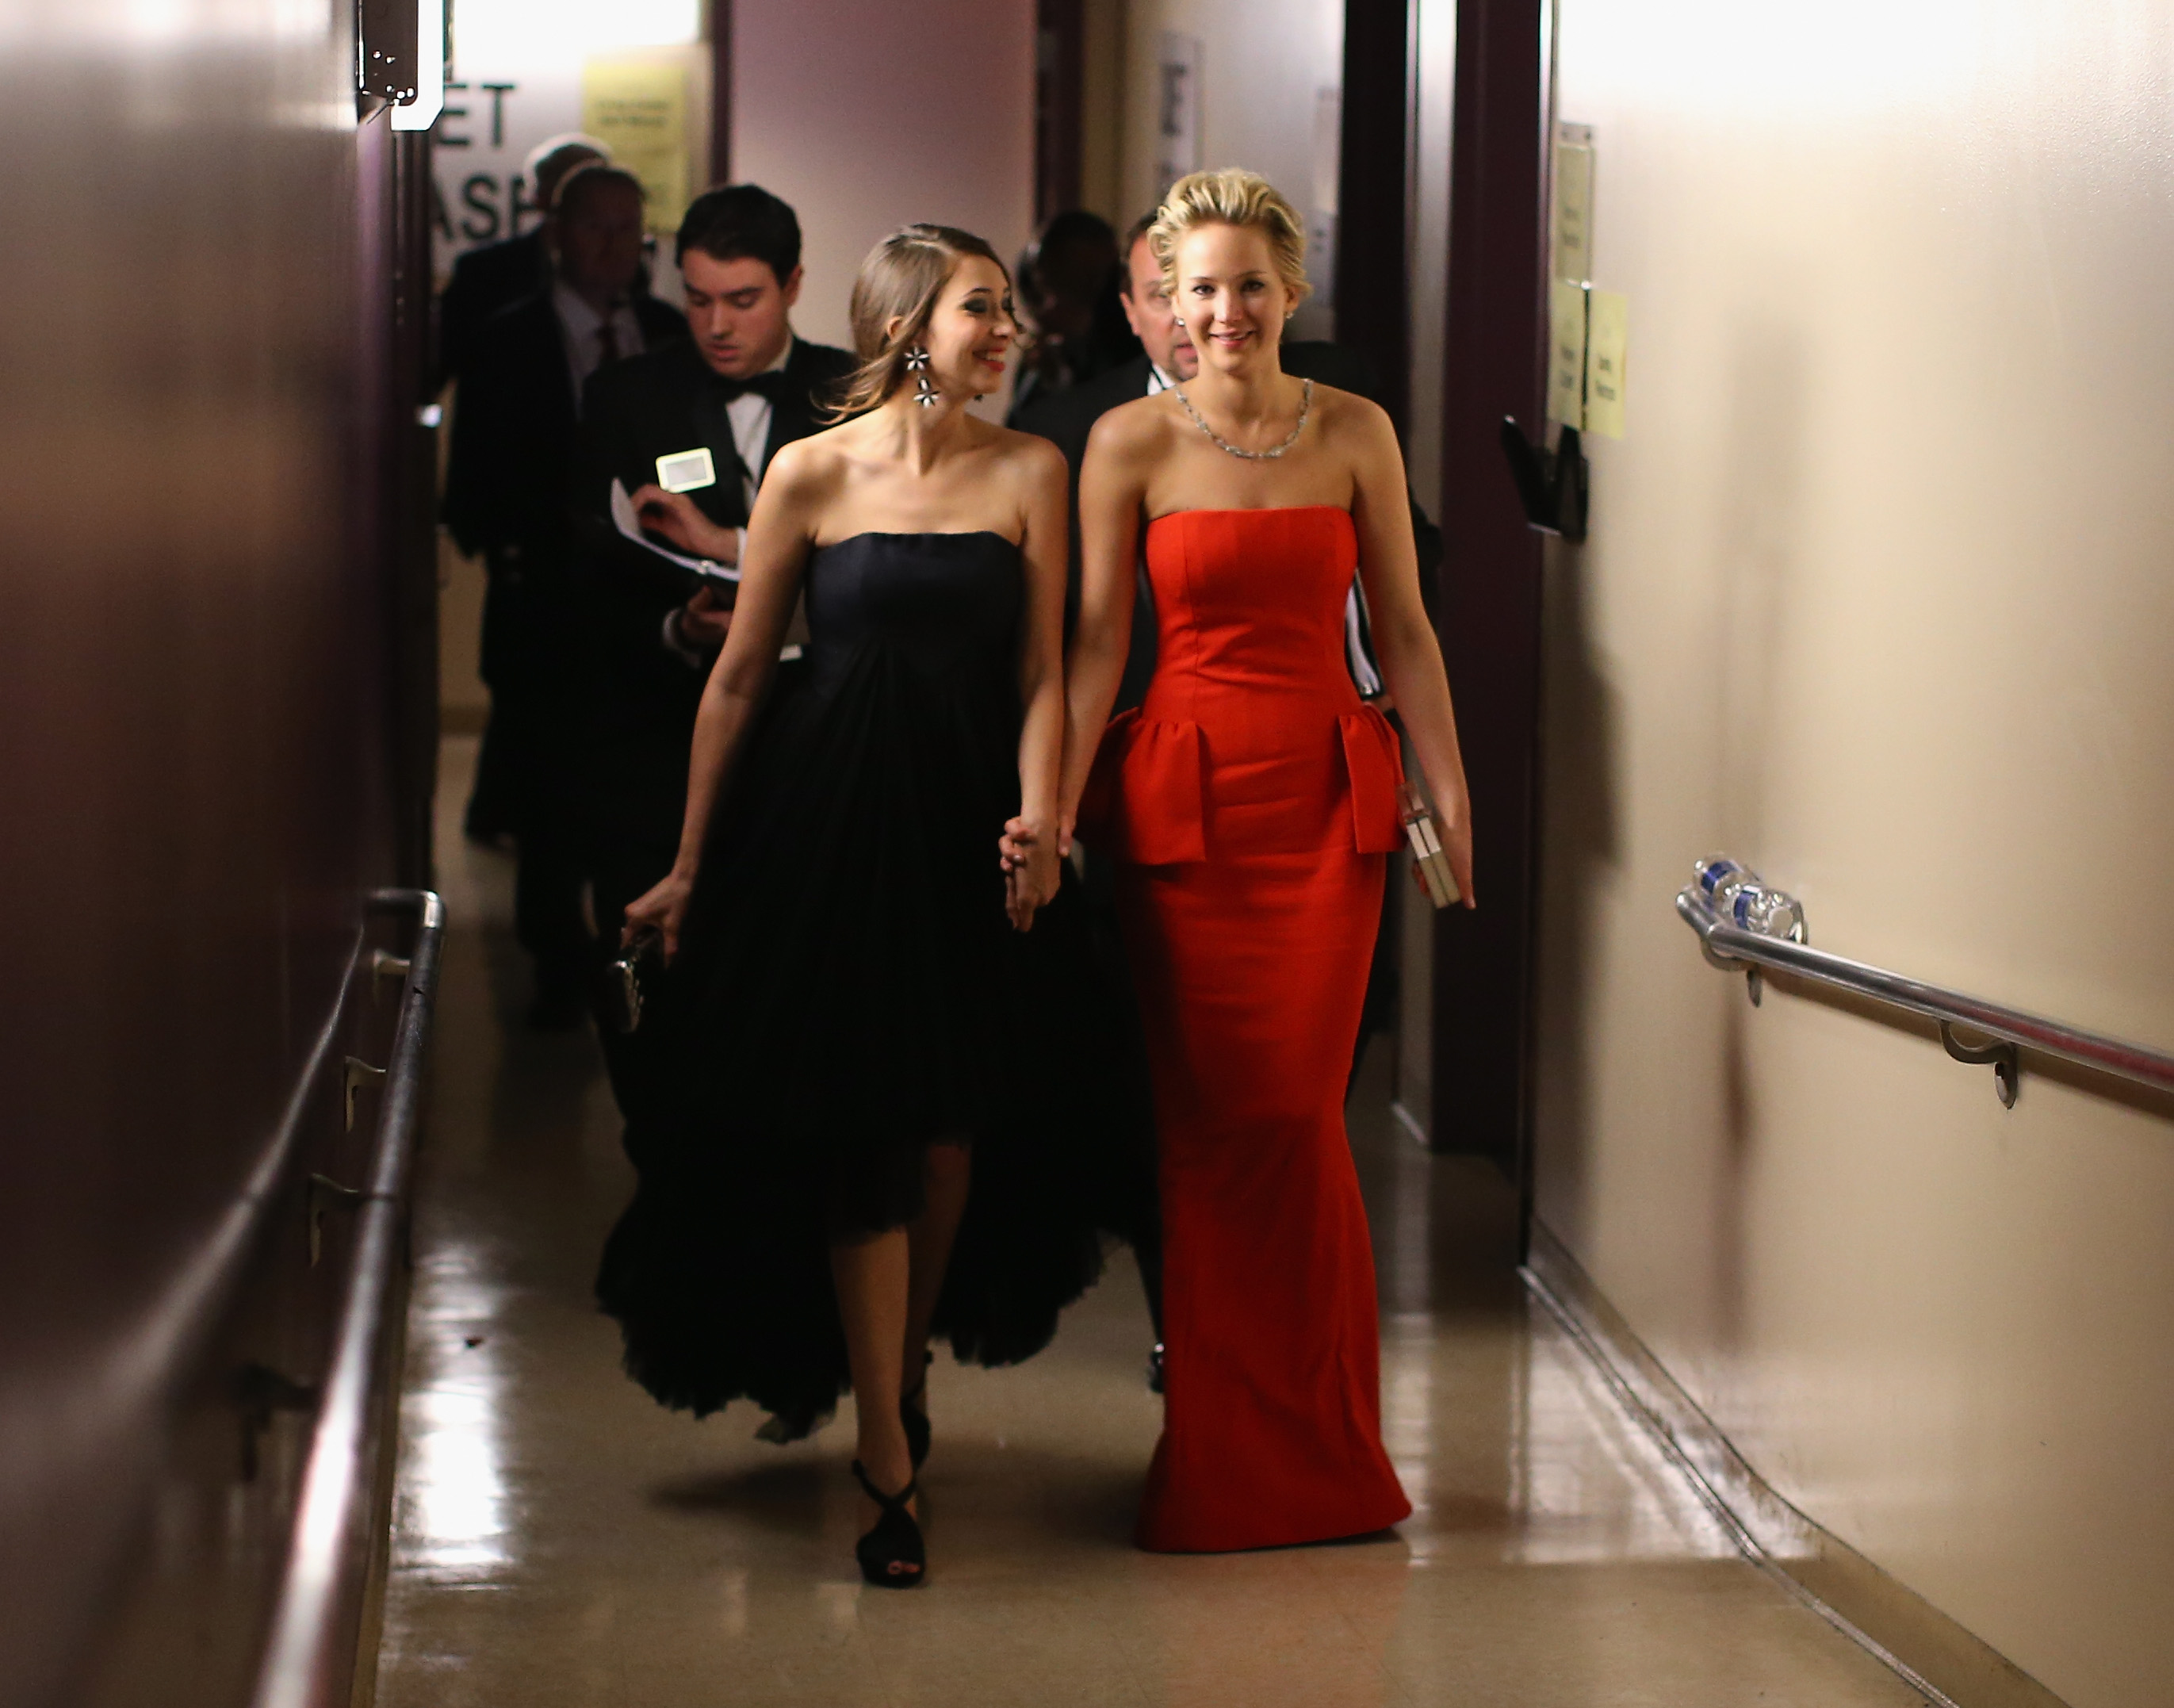 Actress Jennifer Lawrence and friend Laura Simpson backstage during the Oscars held at Dolby Theatre on March 2, 2014 in Hollywood, California.